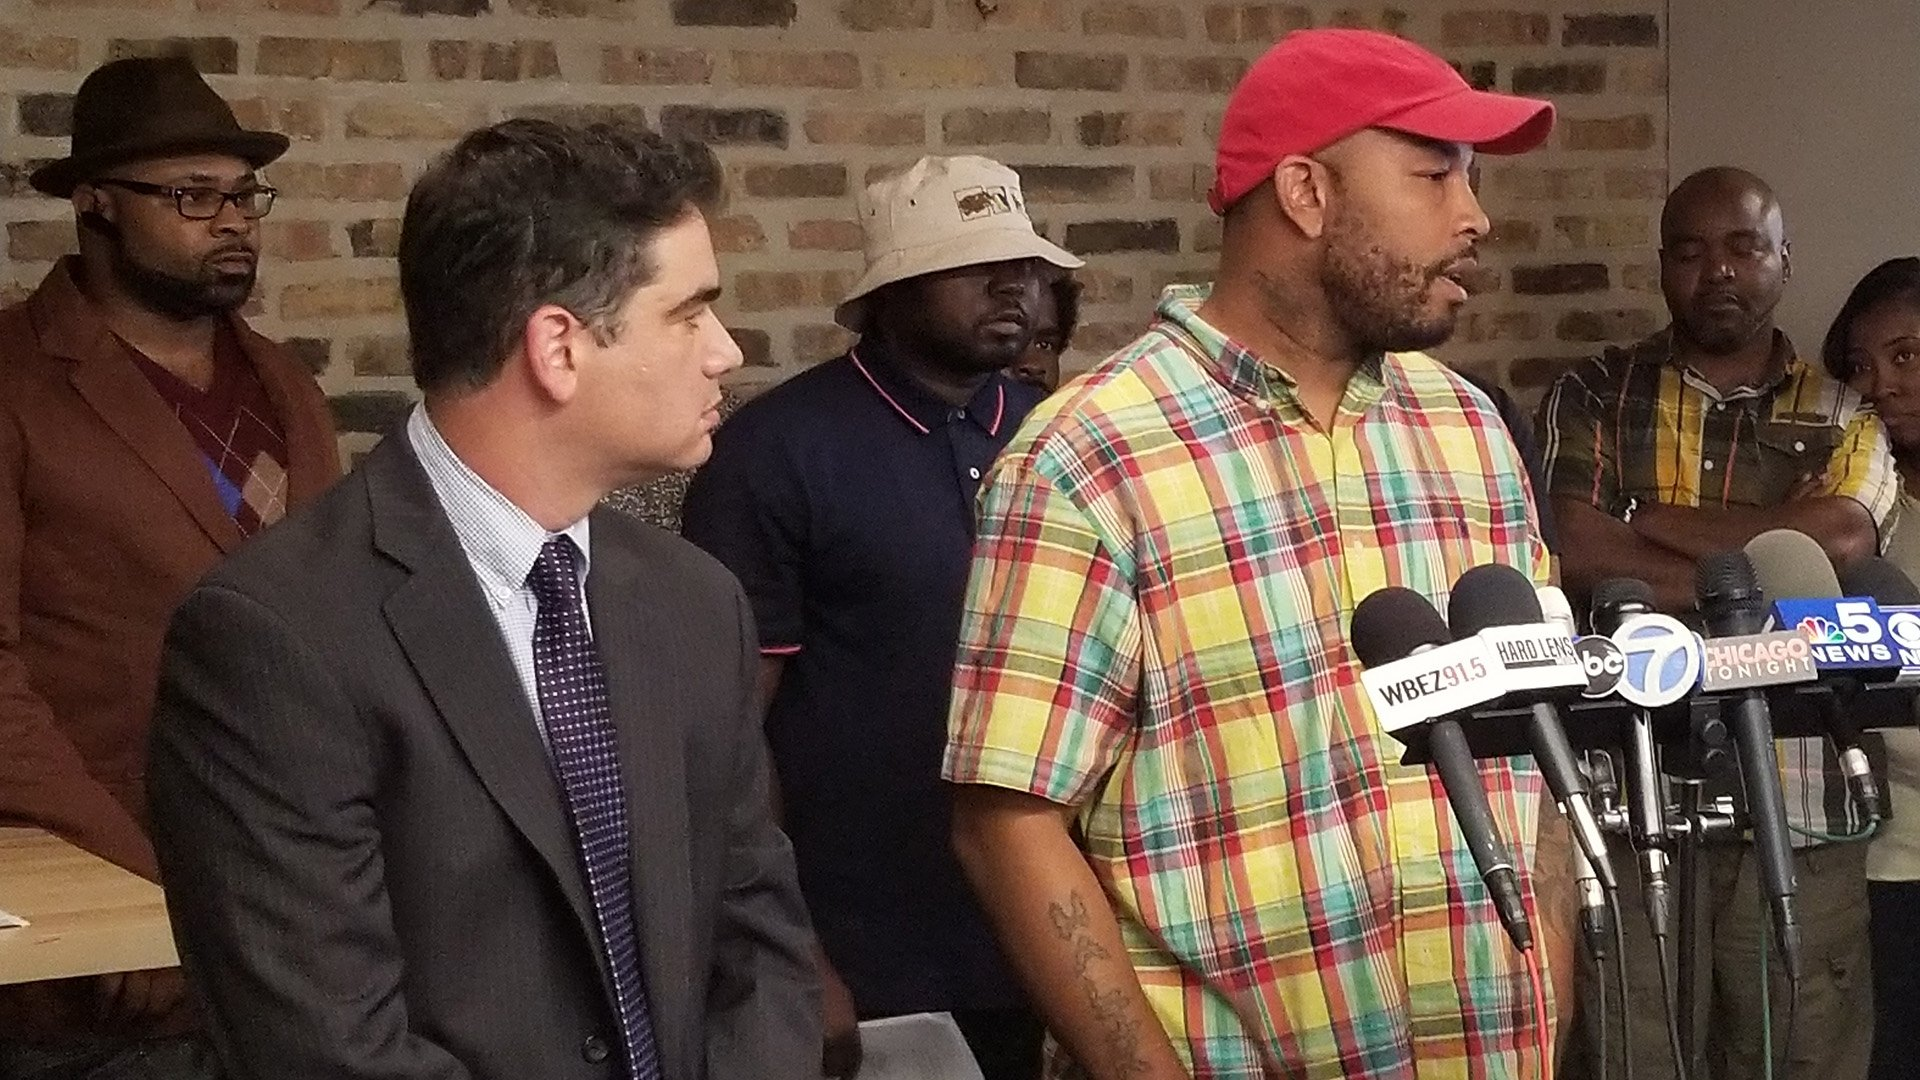 15 Men Seek Exoneration in Lawsuit Claiming Chicago Police